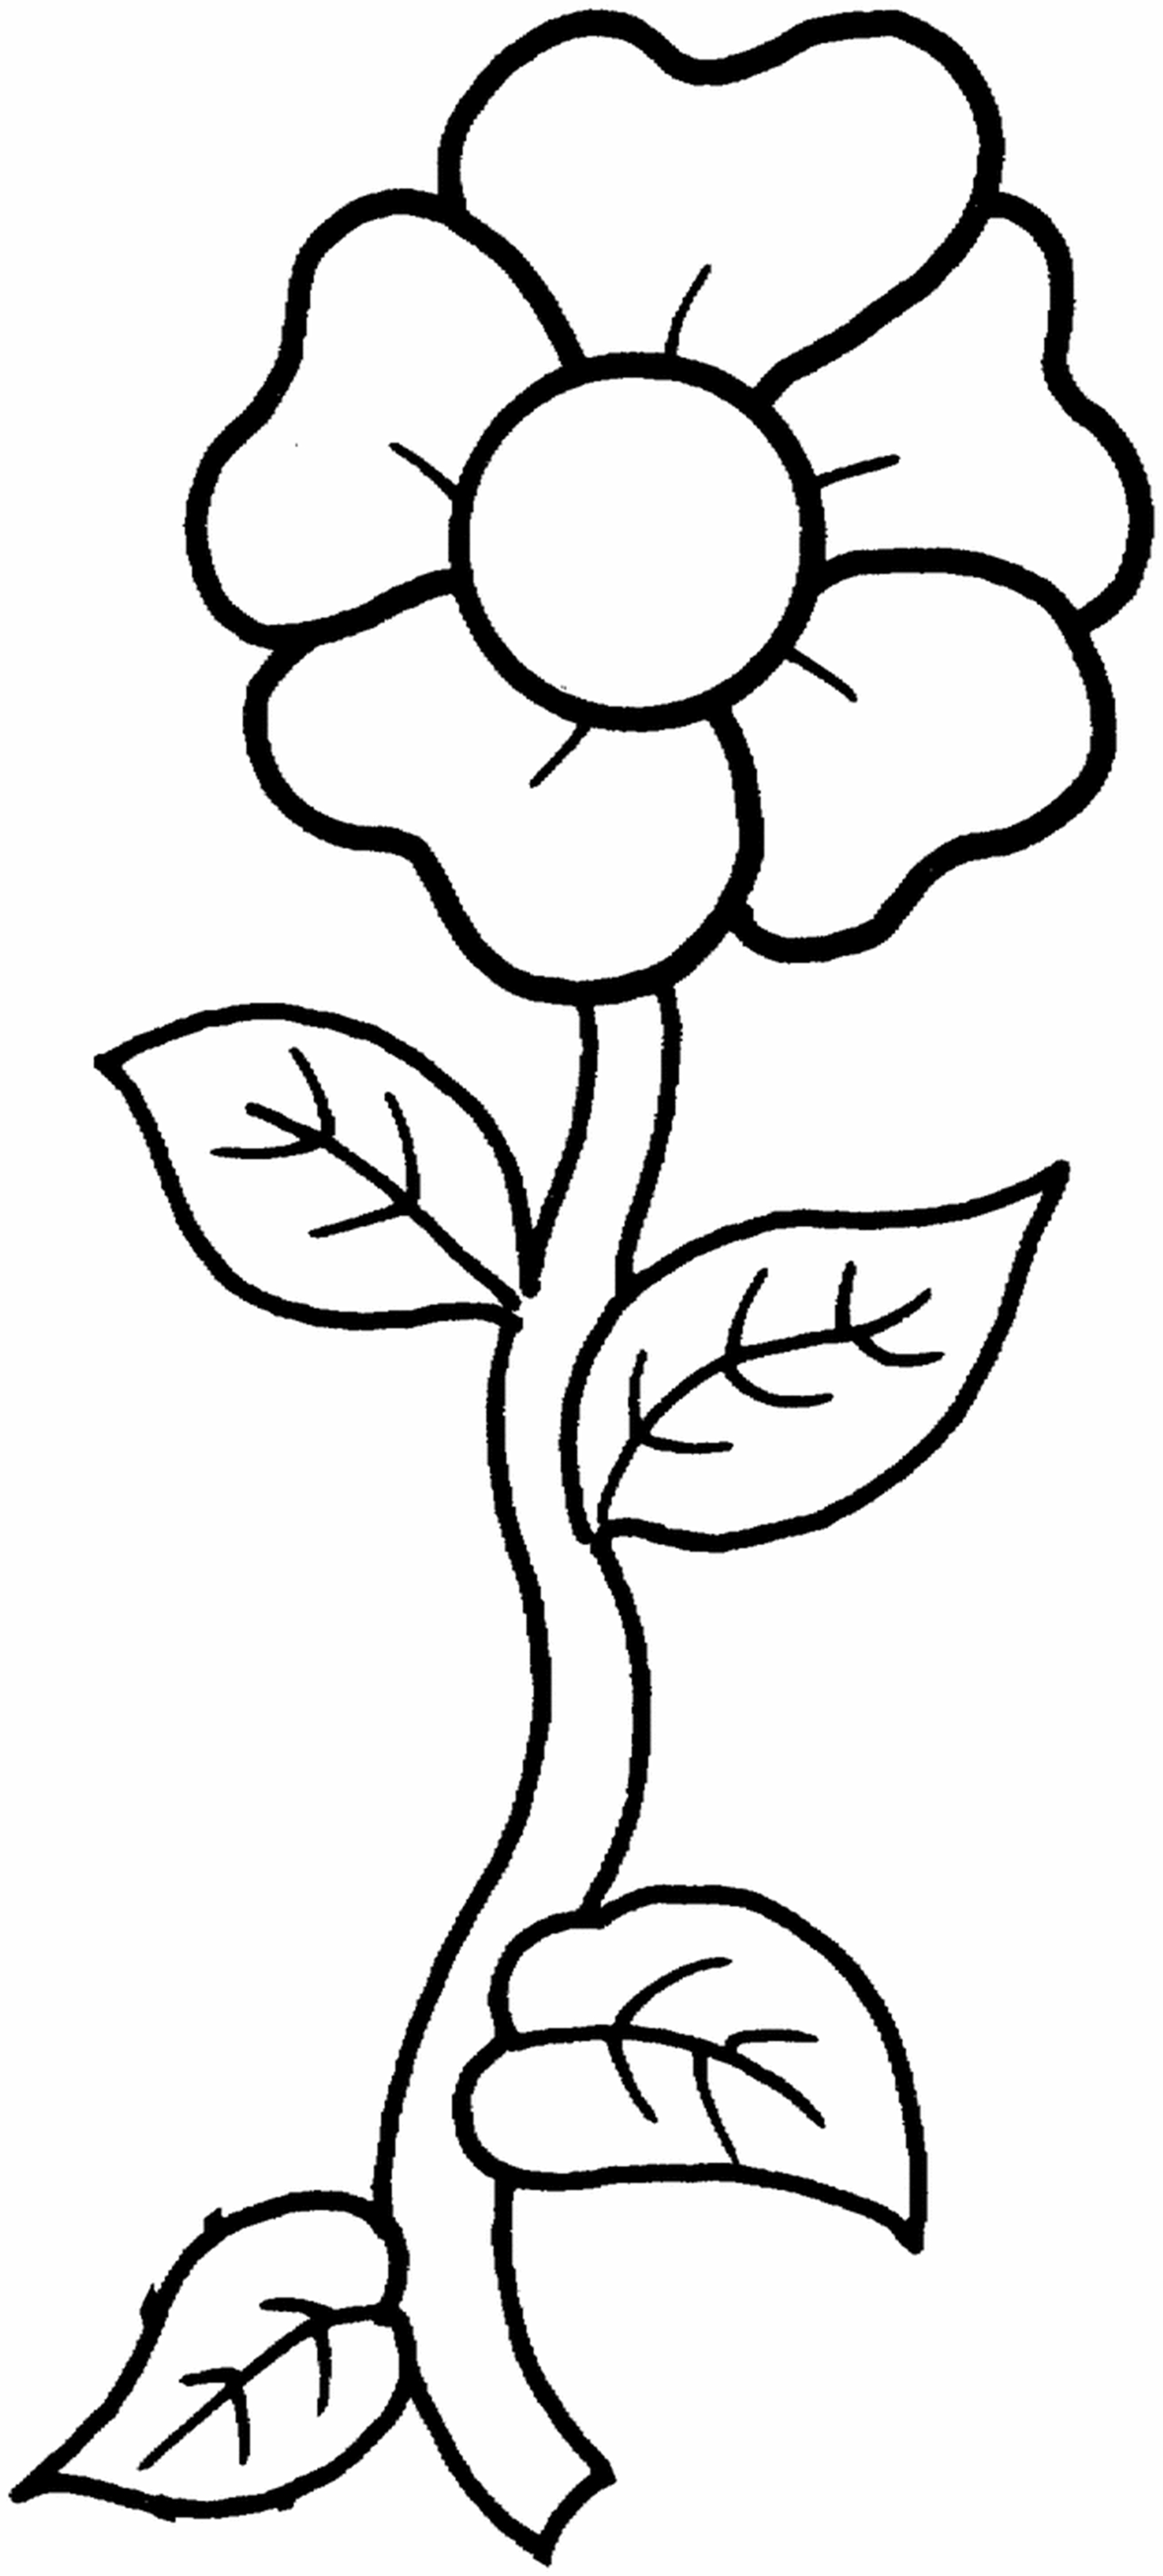 pictures to colour in of flowers free printable floral coloring page ausdruckbare flowers in of pictures to colour